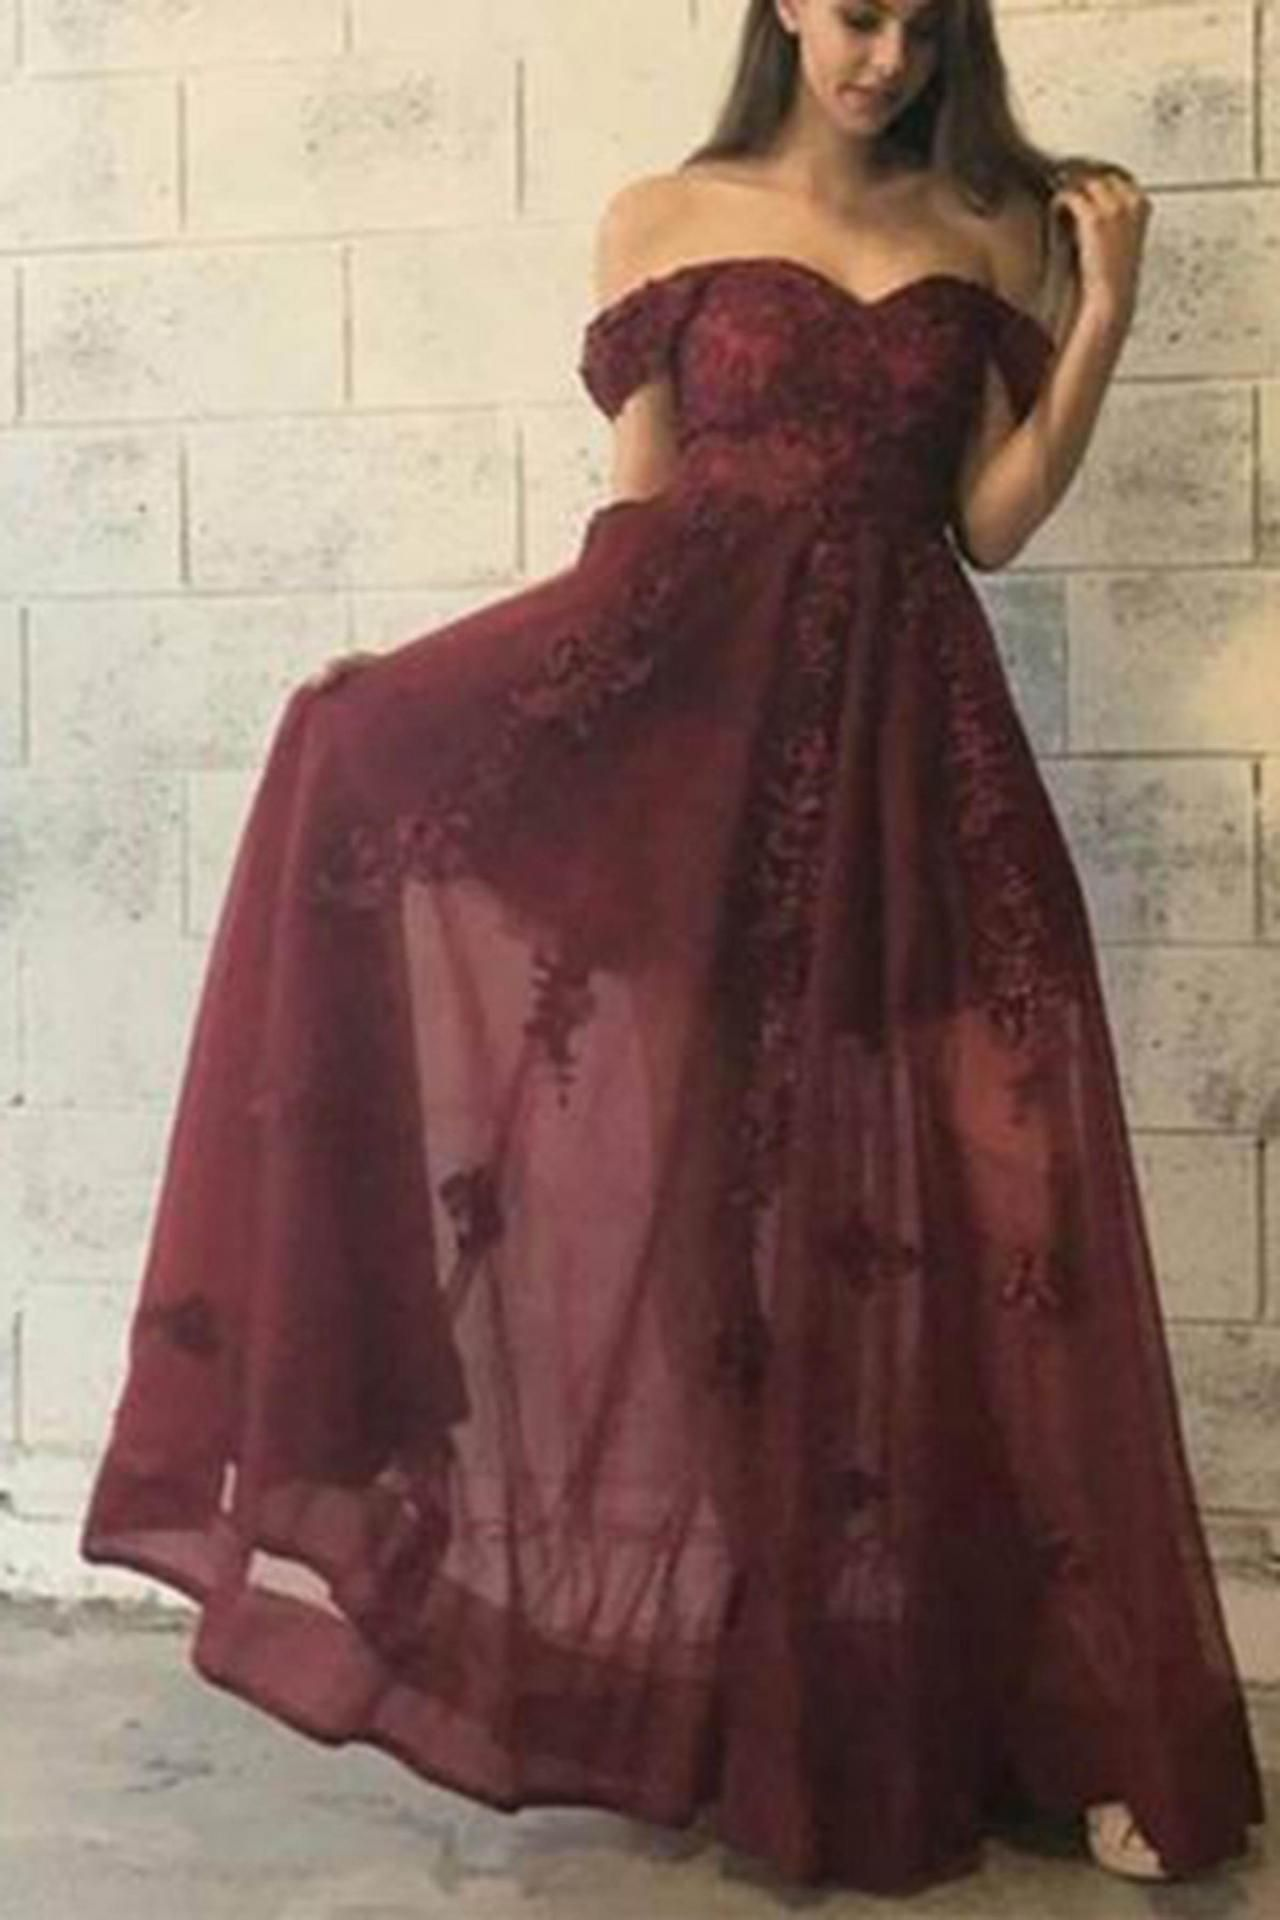 Makeup for burgundy lace dress